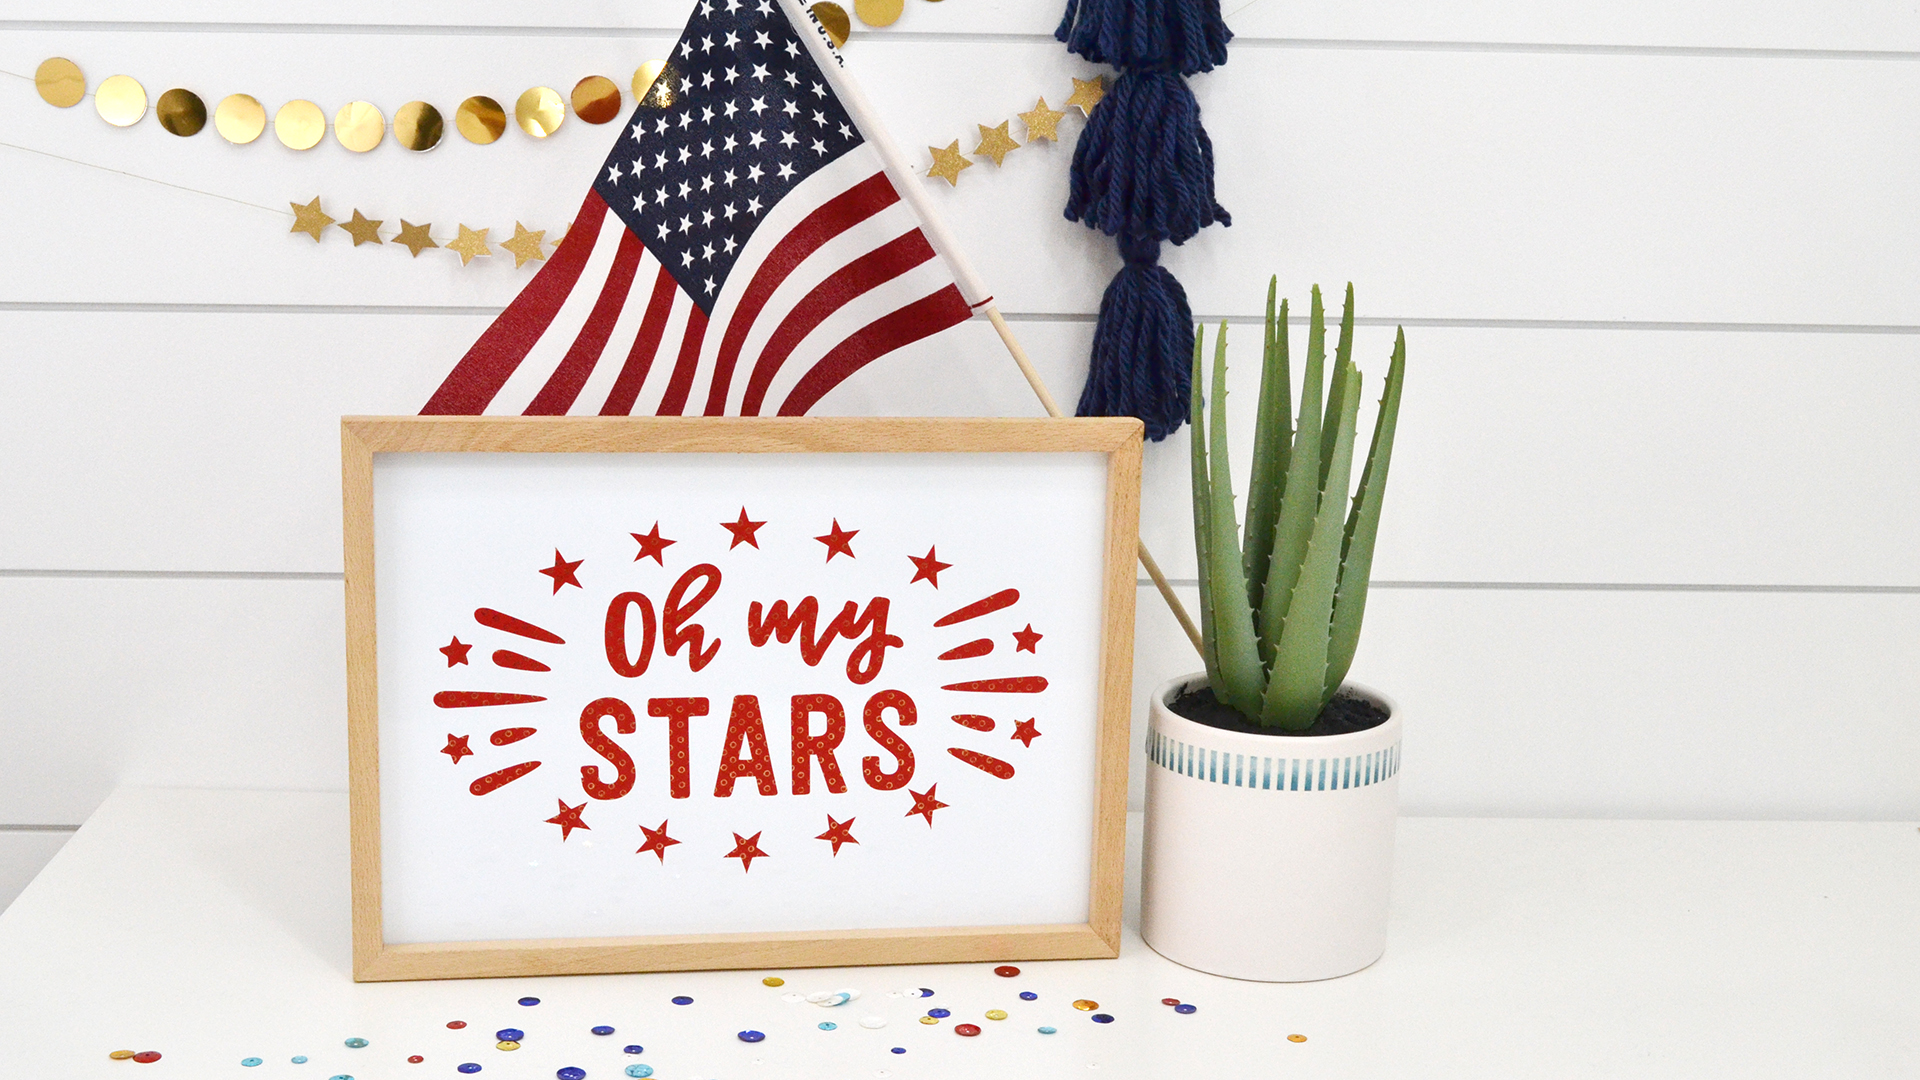 DIY Patriotic Decor by Aly Dosdall for We R Memory Keepers